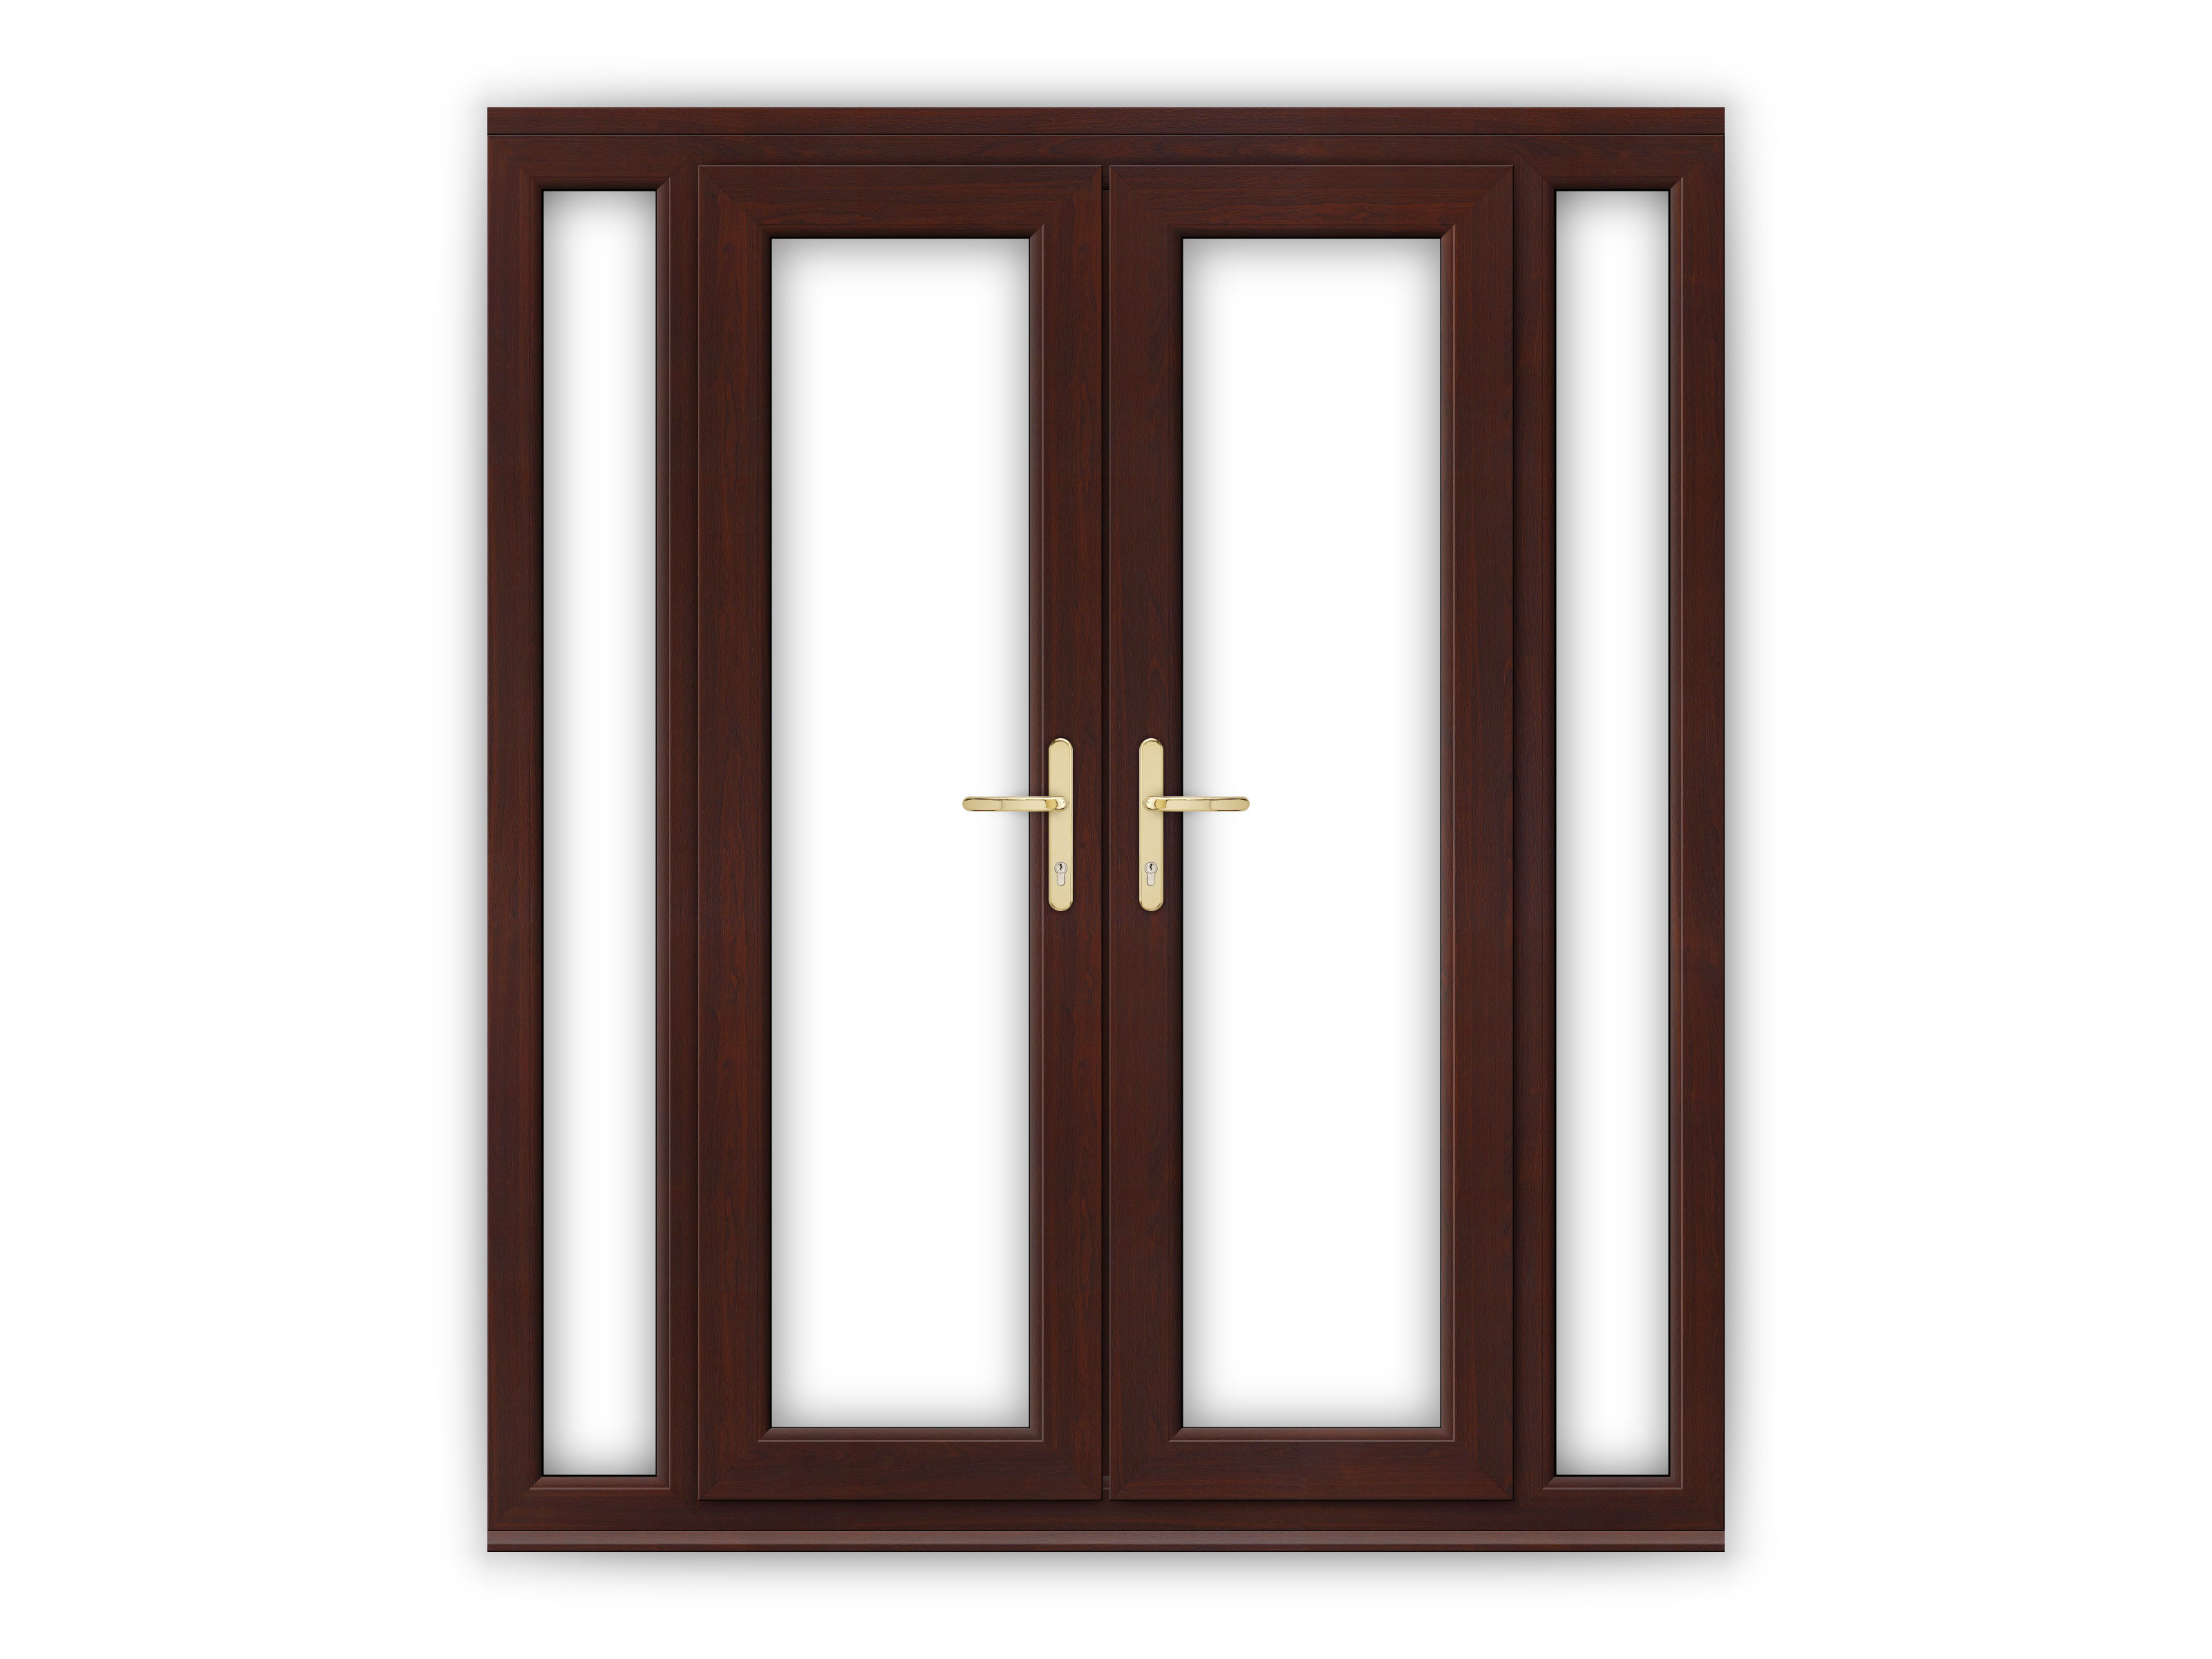 4ft rosewood upvc french doors with narrow side panels